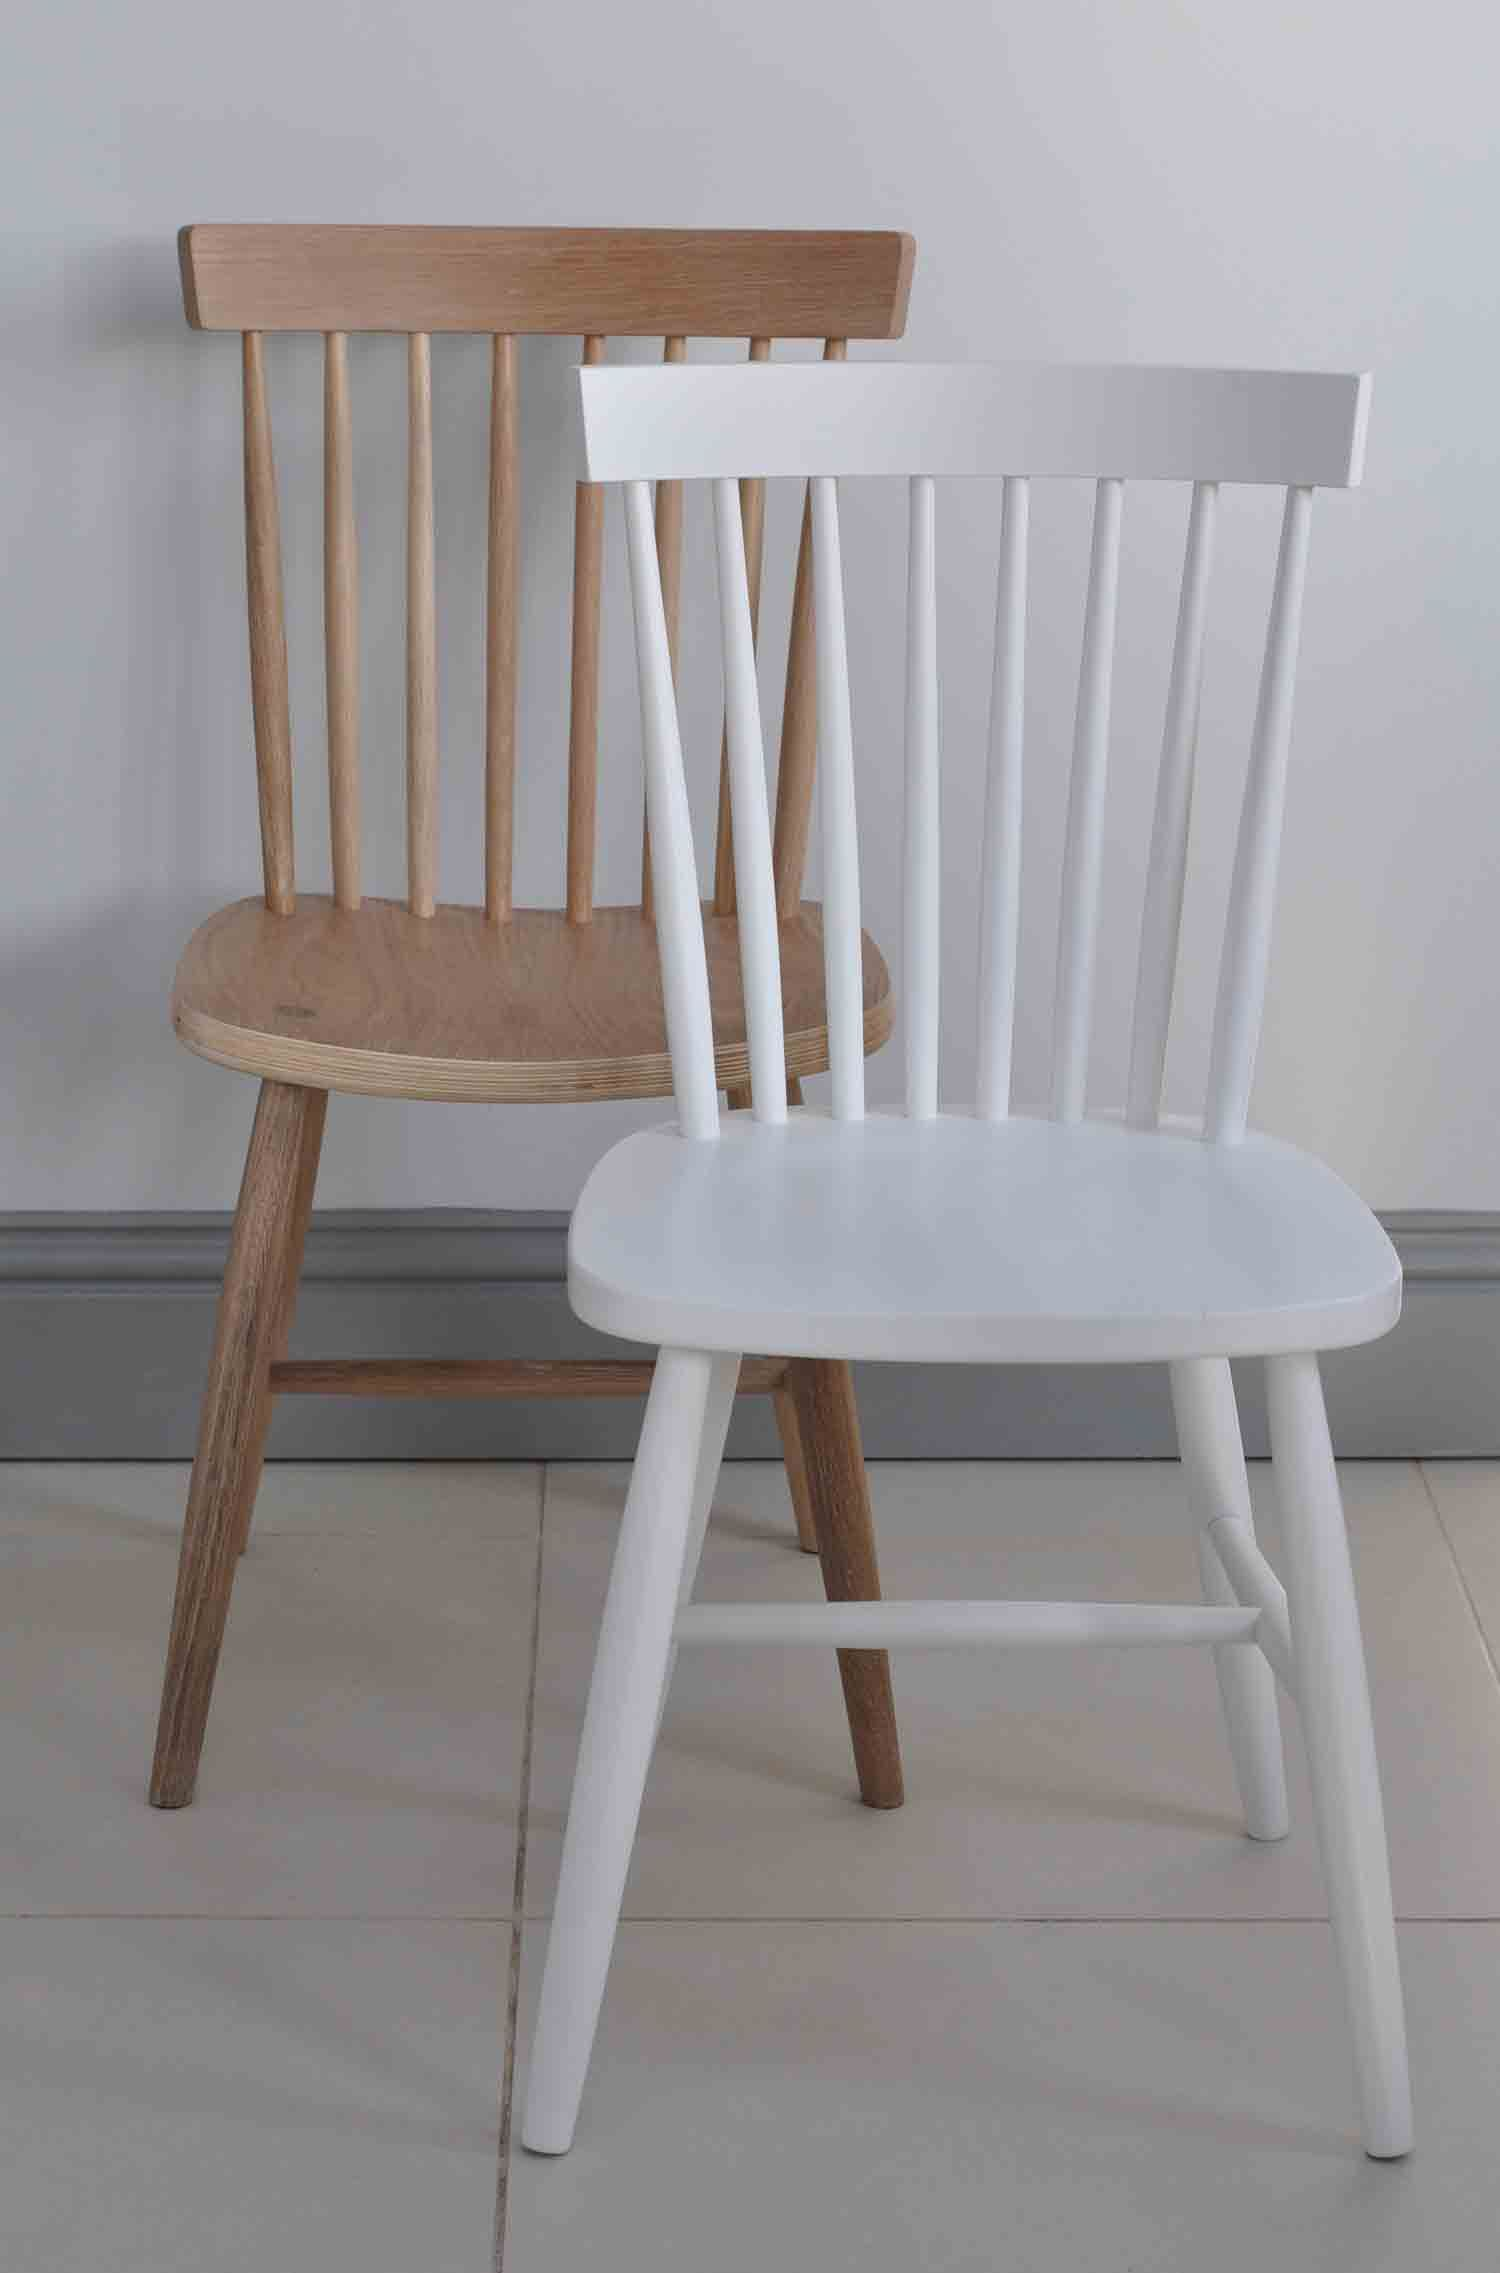 Elegant Oxford Spindle Back Dining Chair   White Painted Or Natural Oak Available  In Two Finishes .